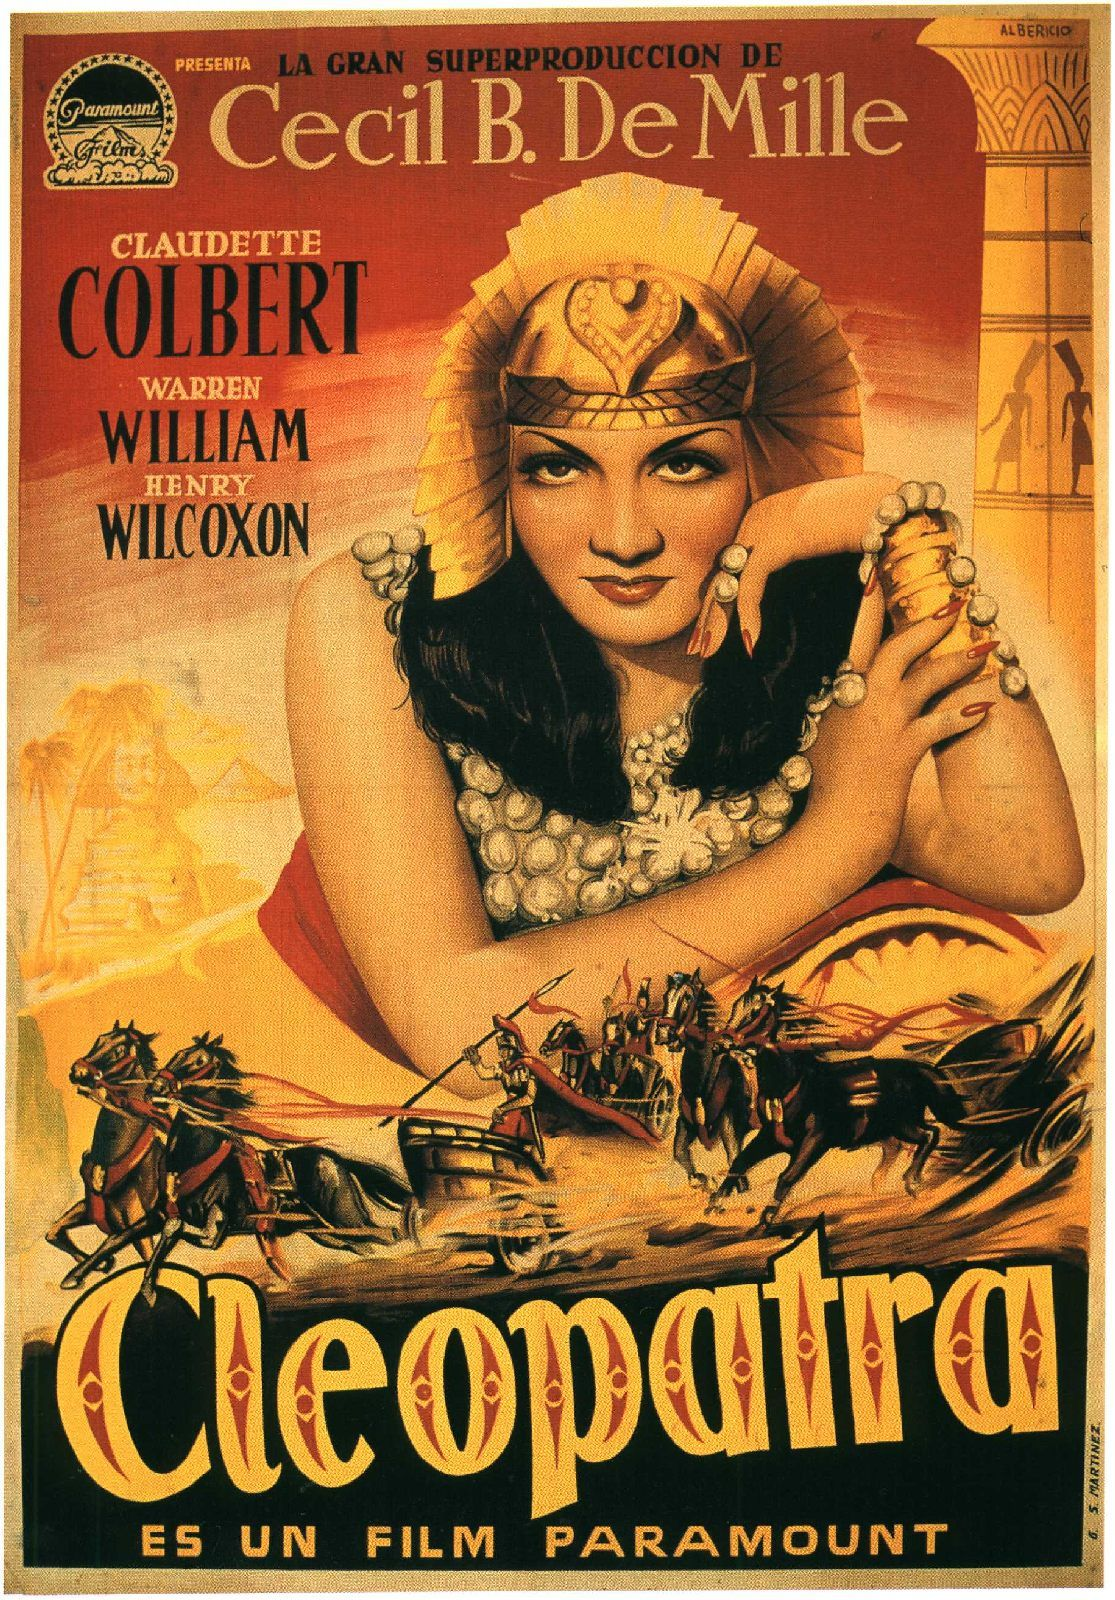 Cleopatra - Cecil Demille 1934 Movies Classic Movie